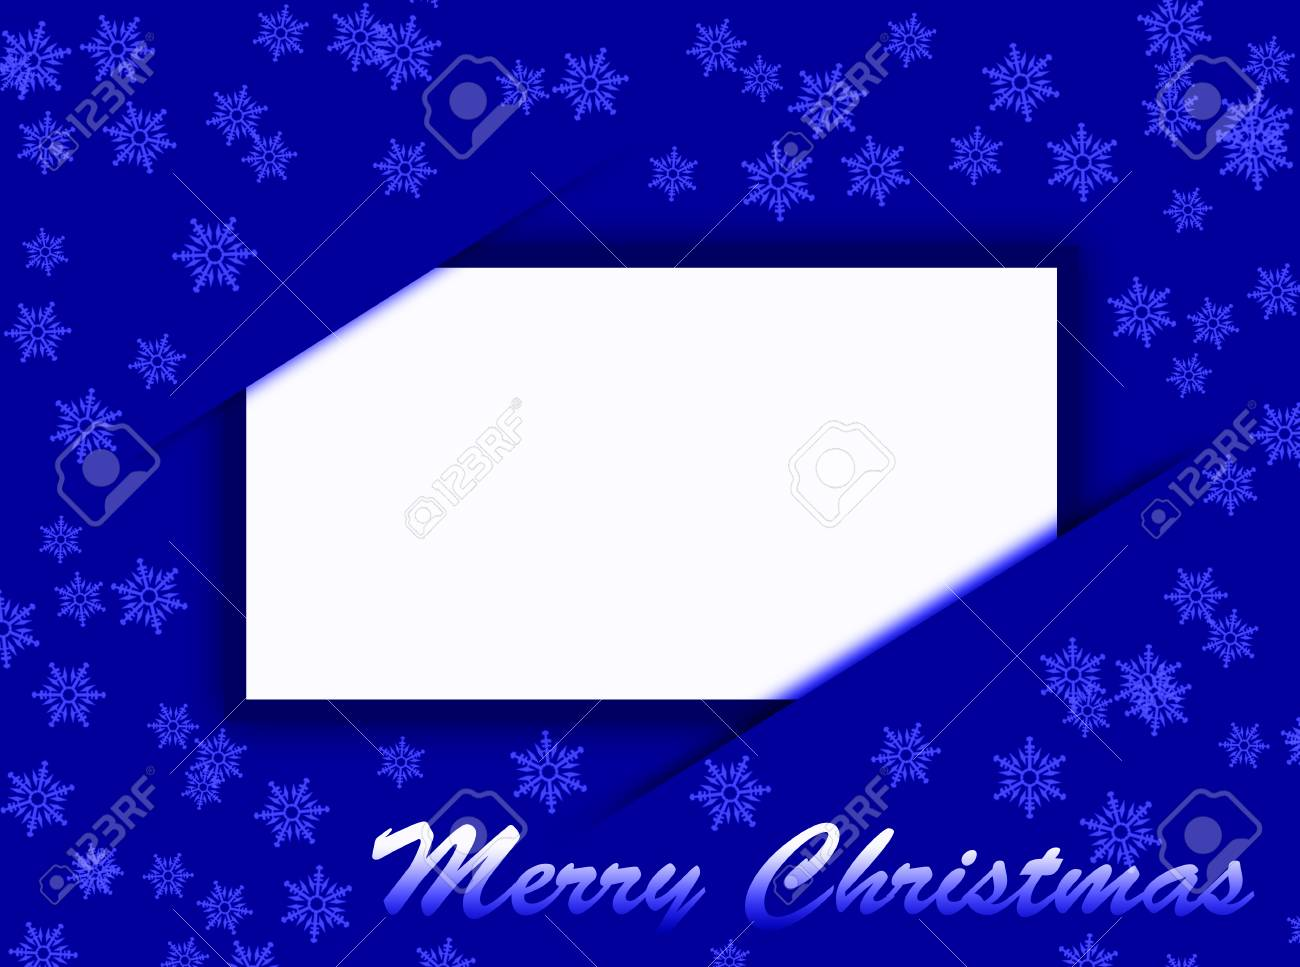 Weihnachtskarten Blau.Stock Photo